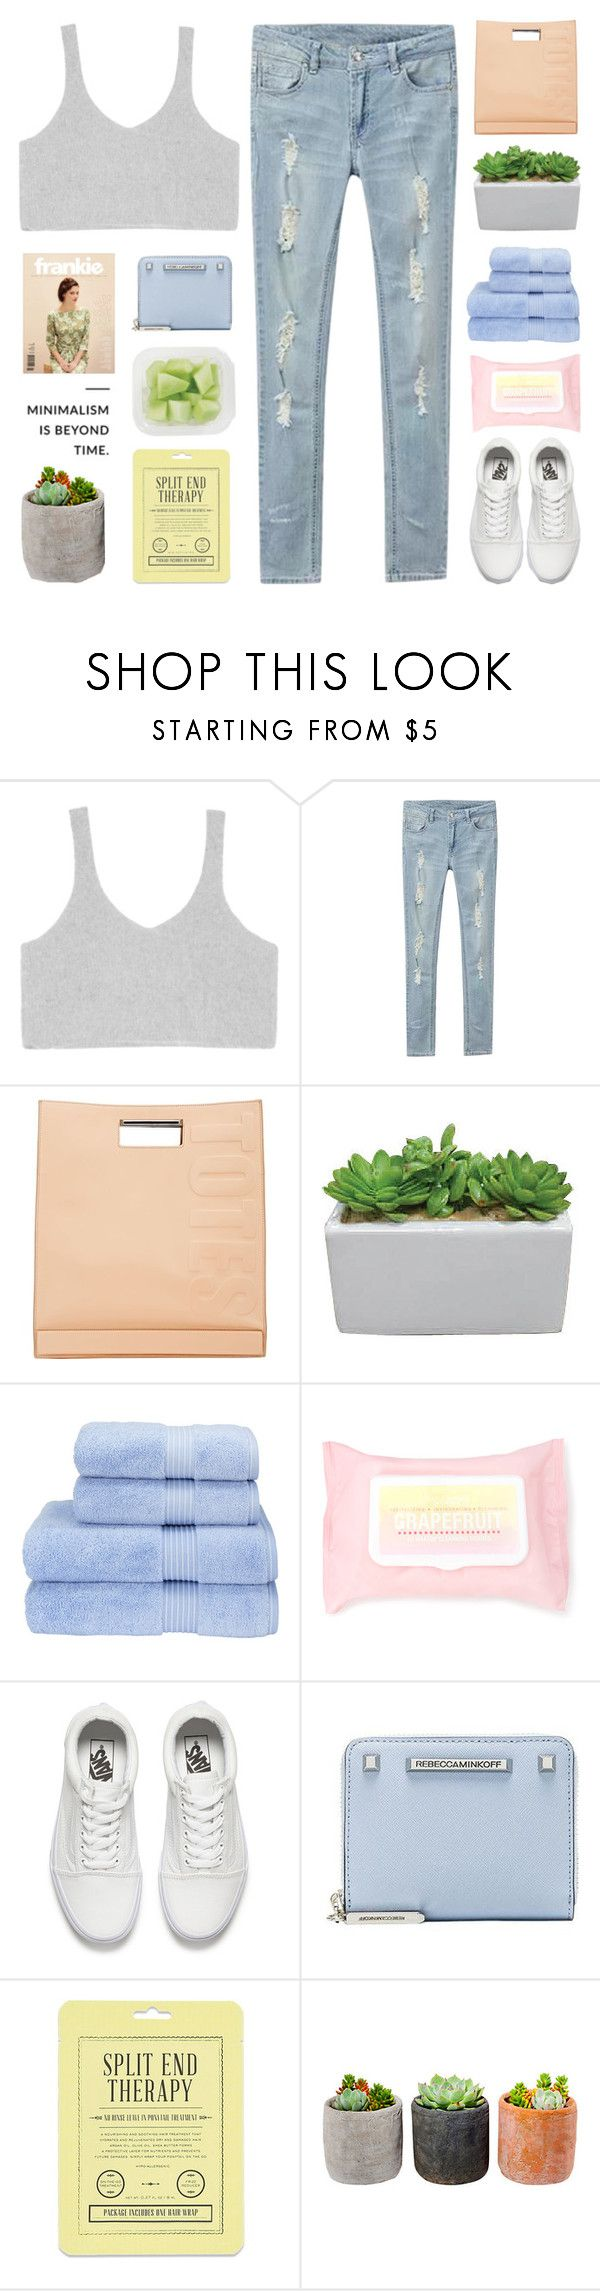 """that's when the beginning of the end begun"" by nsrogsy3 ❤ liked on Polyvore featuring 3.1 Phillip Lim, Christy, Forever 21, Vans, Rebecca Minkoff, Love 21 and Shop Succulents"